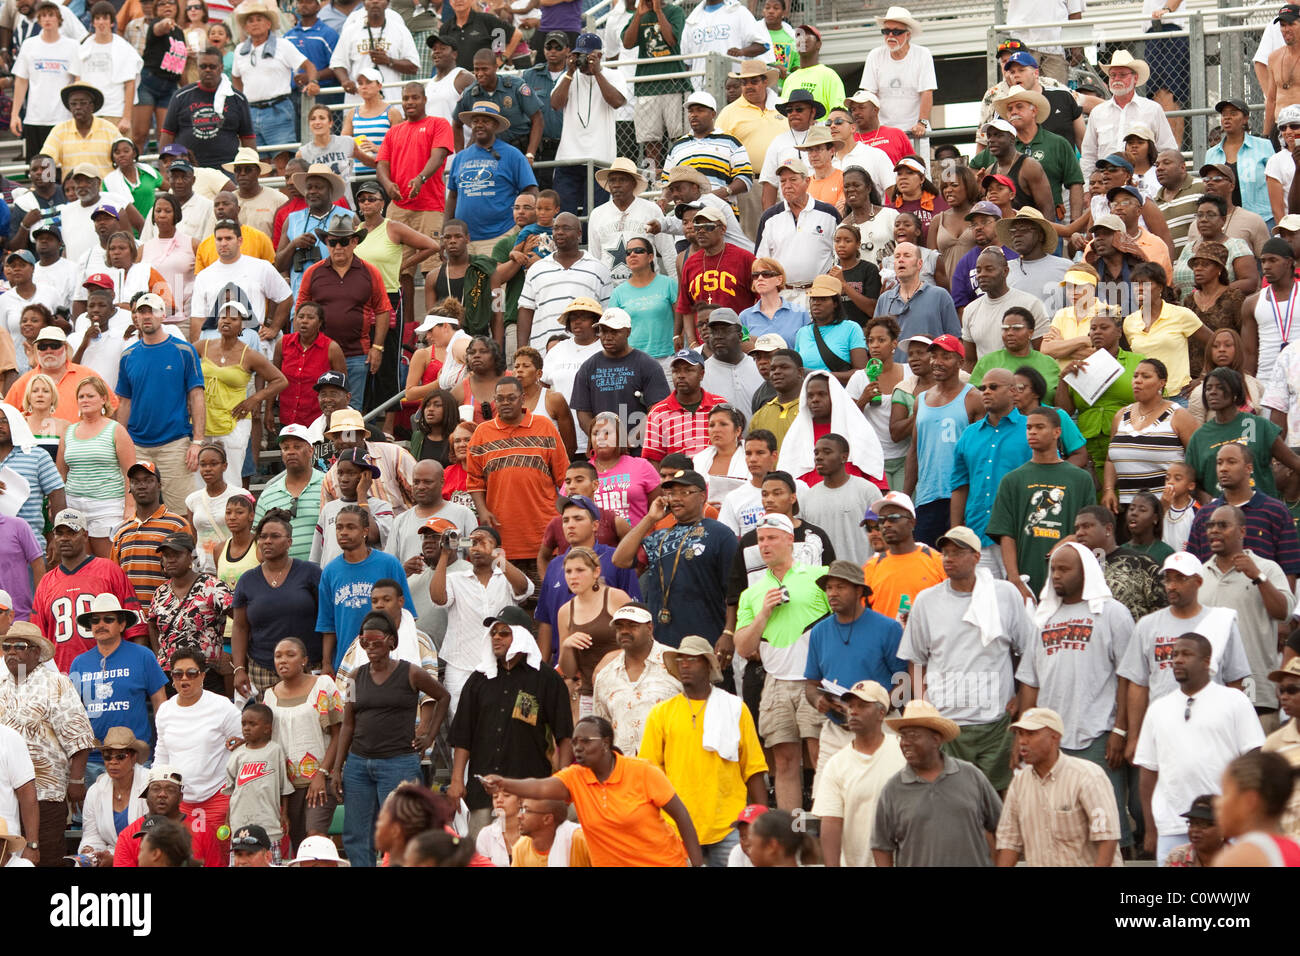 Fans watch finish of race at the Texas state high school track and field championships in Austin. - Stock Image